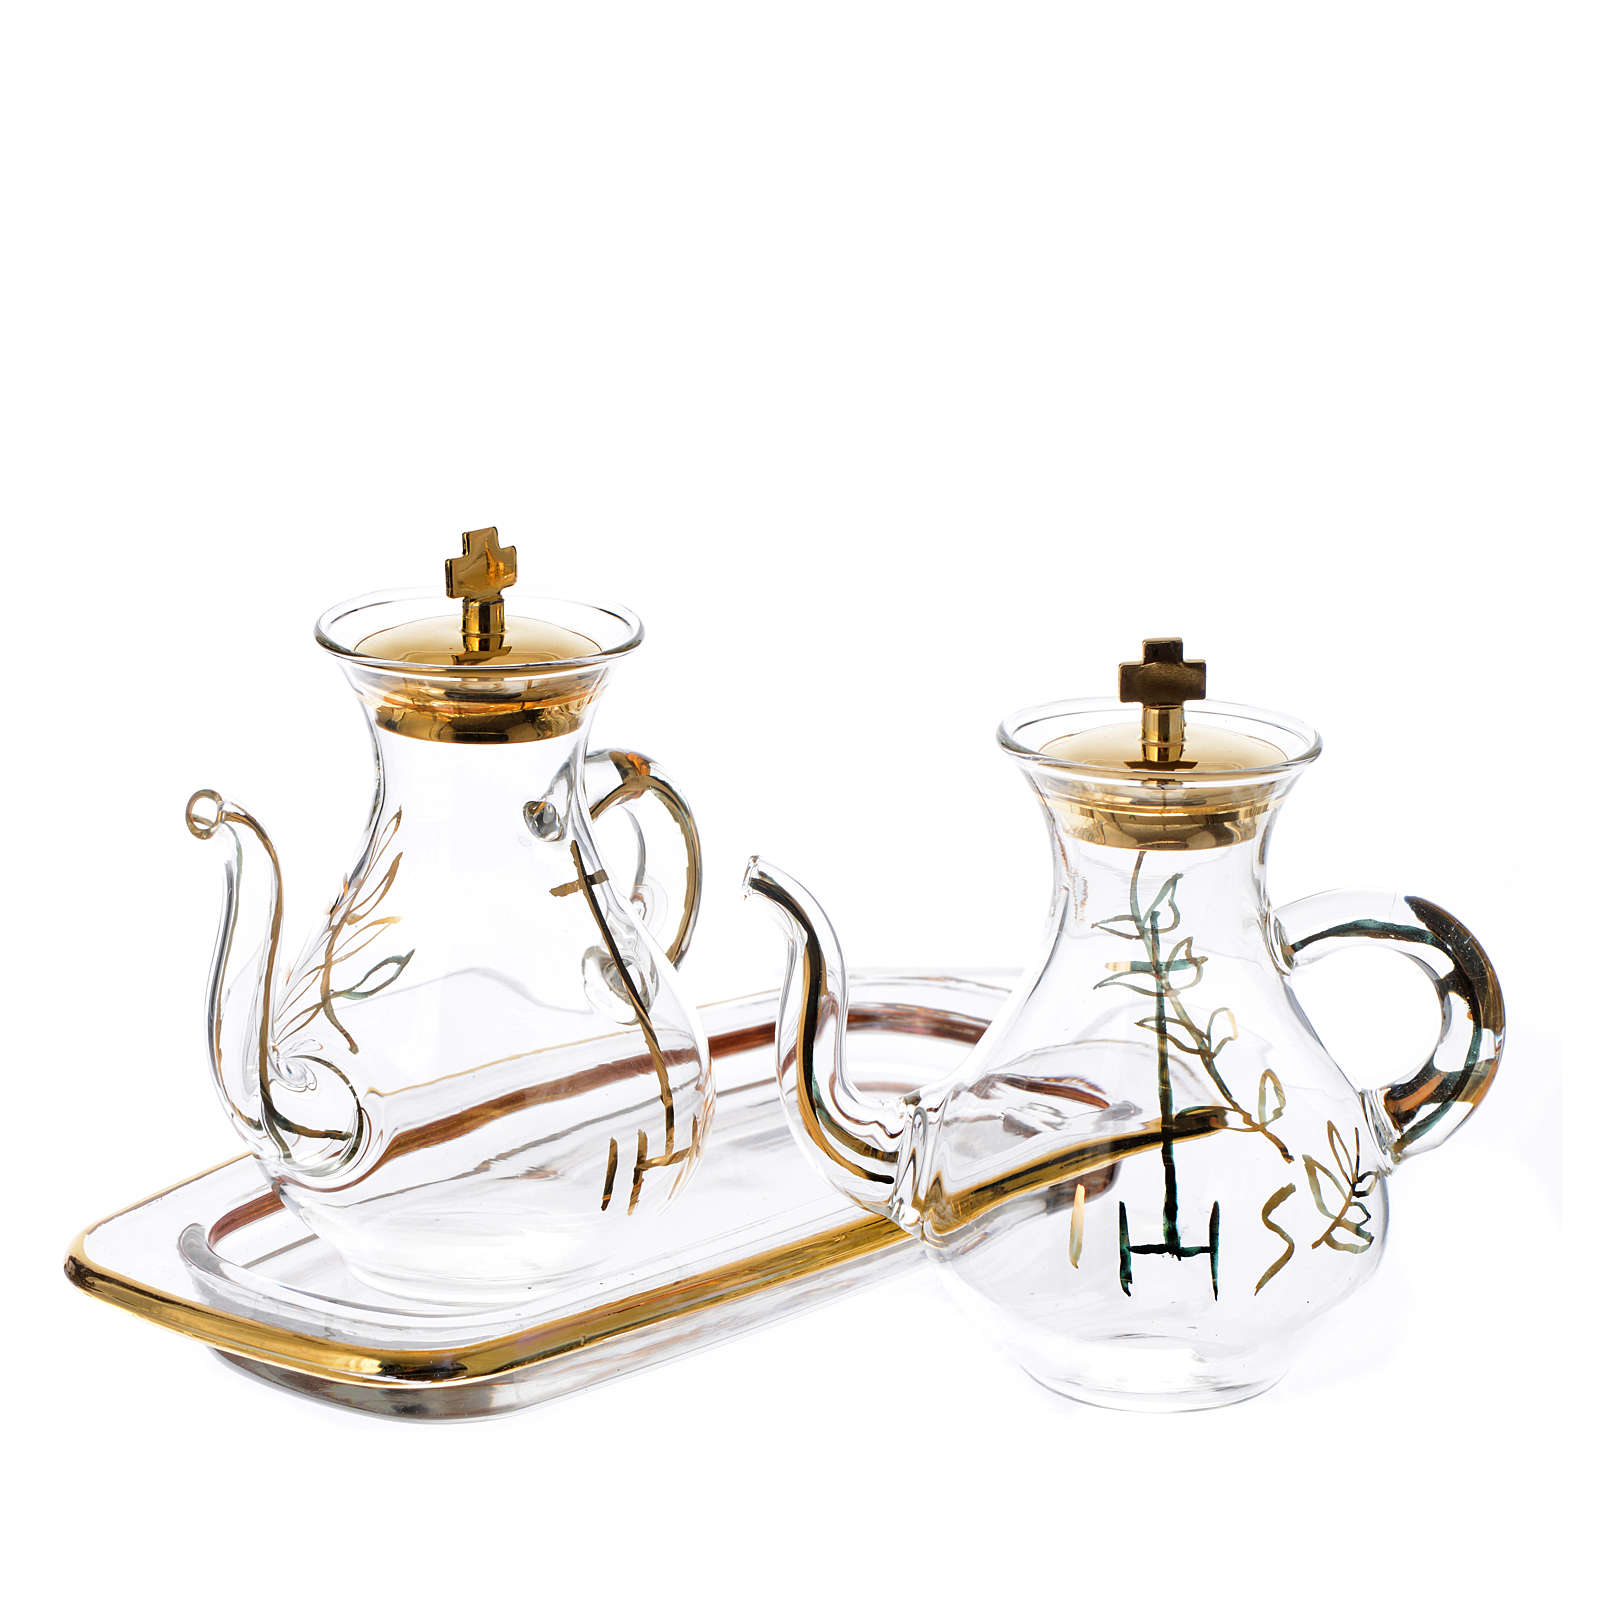 Gold decorated Cruet Set with spout 4